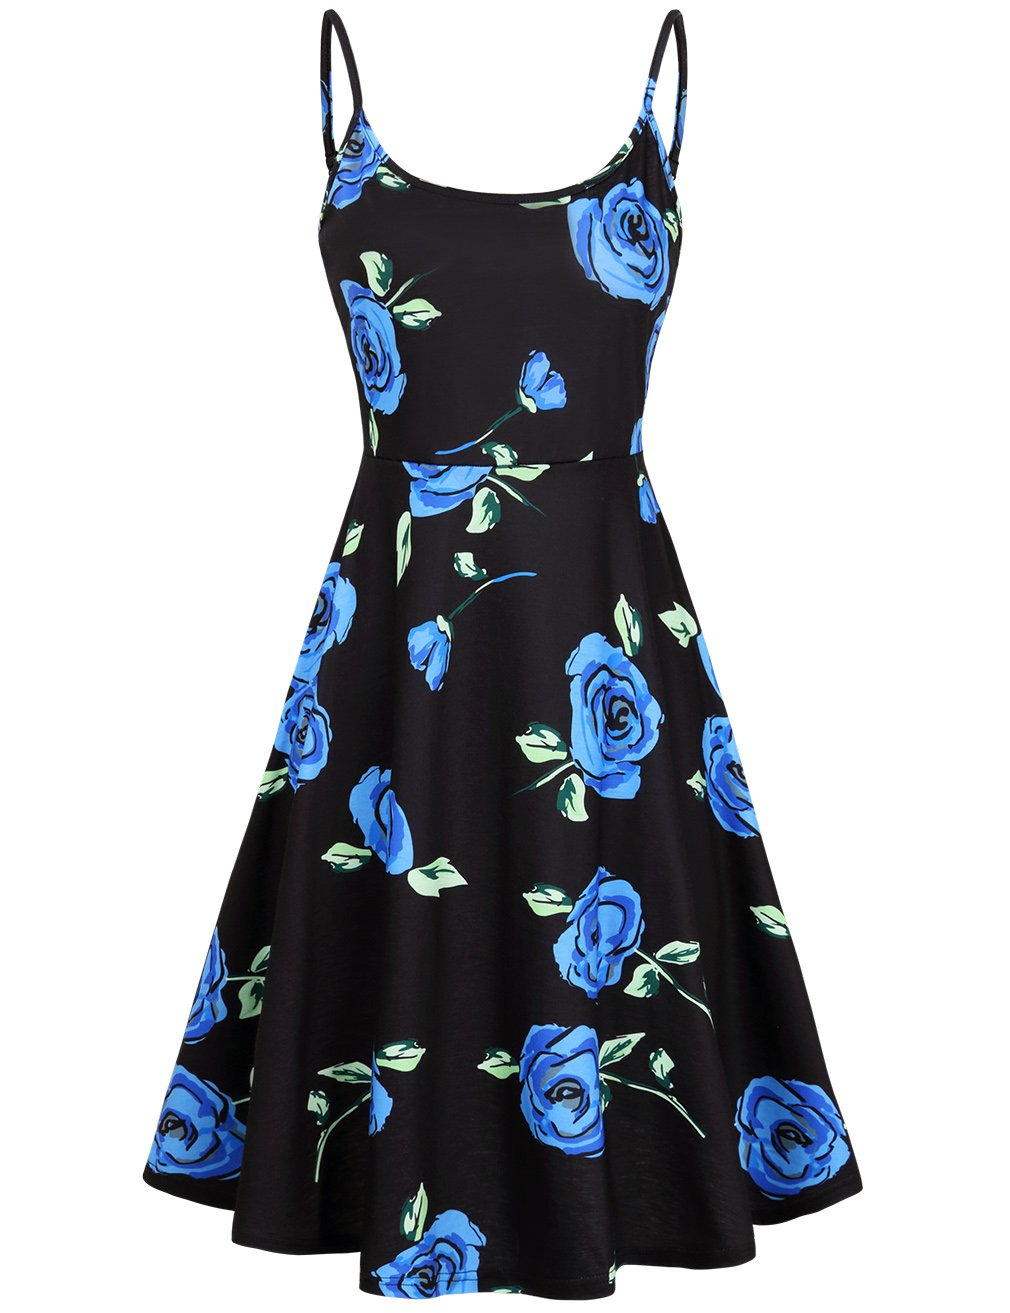 FANVOOK Elegant Dress,Office Ladies Wear to Work Casual Chic Evening Cocktail Dress Blue S